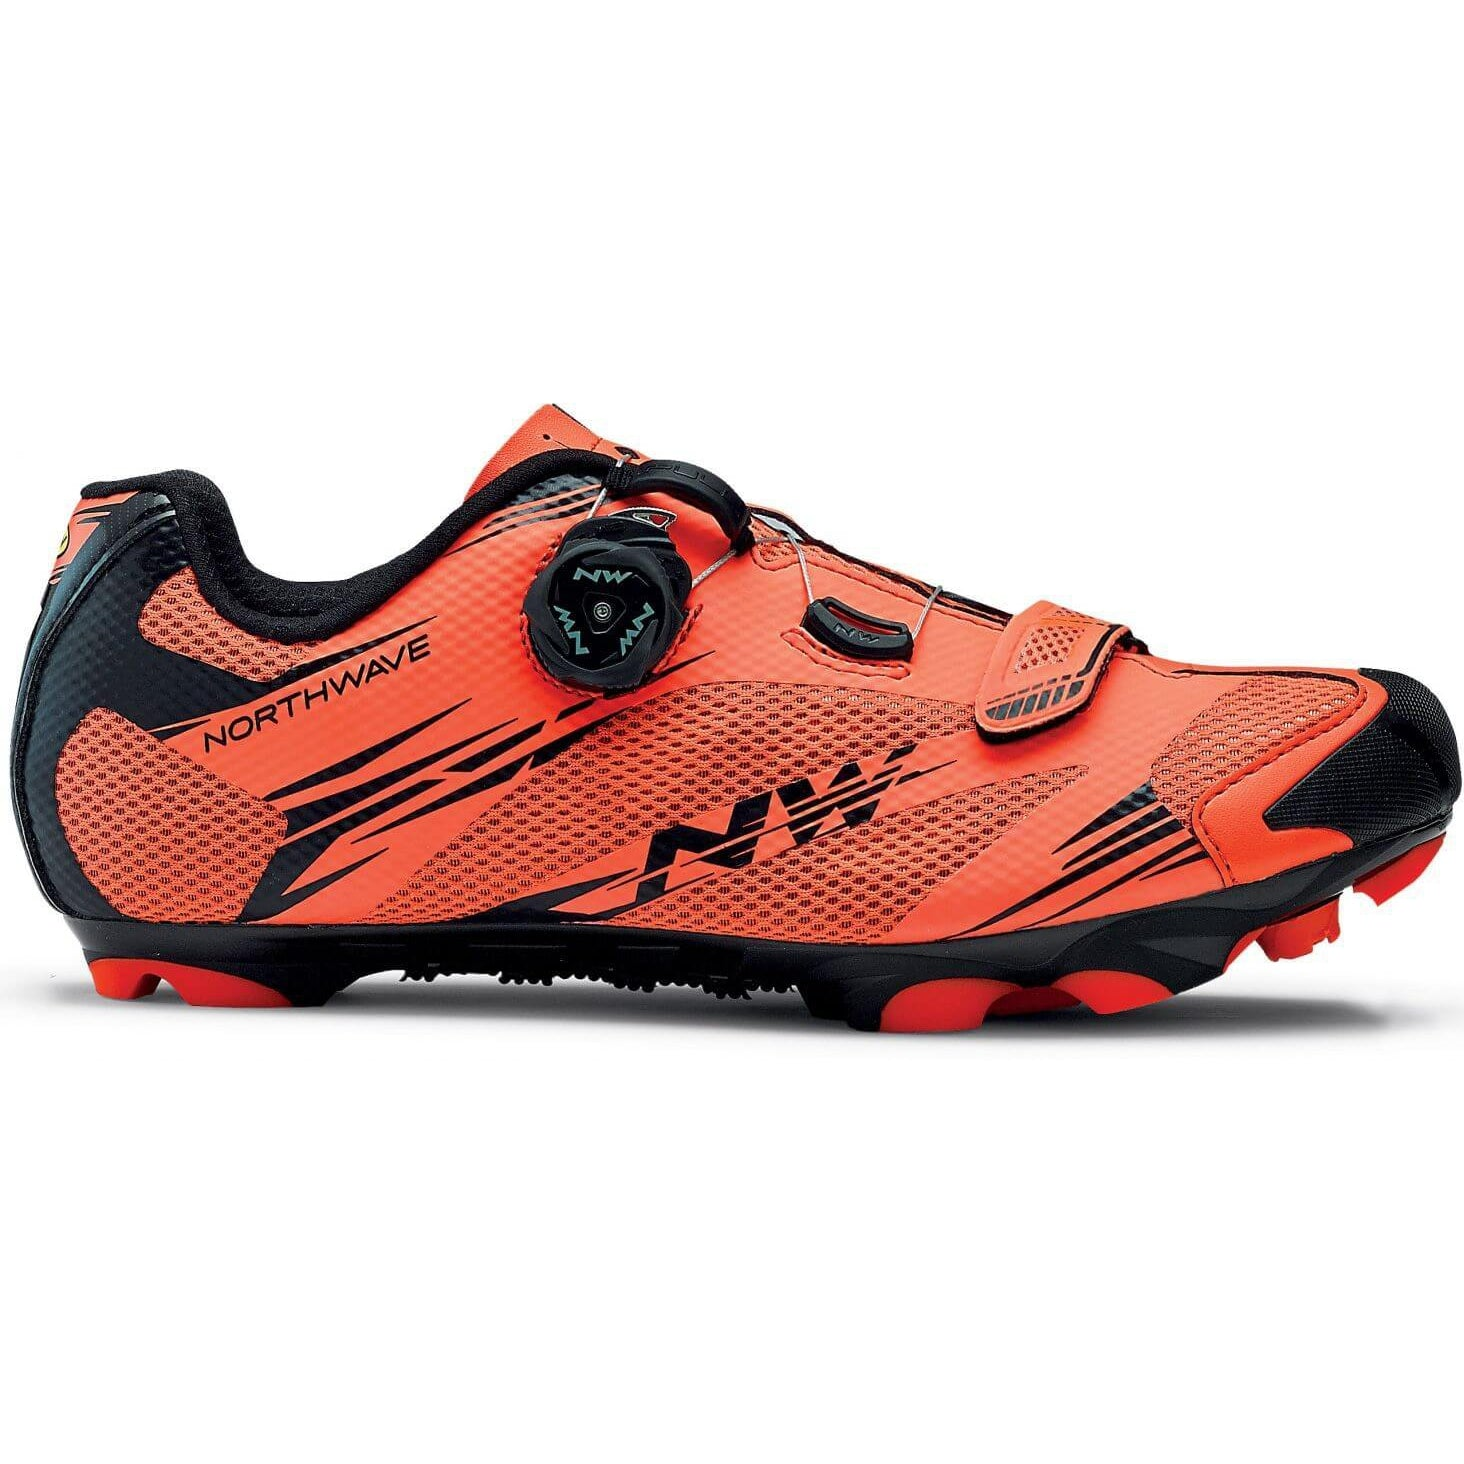 Zapatillas Northwave SCORPIUS 2 PLUS Naranja Lobster - Negro